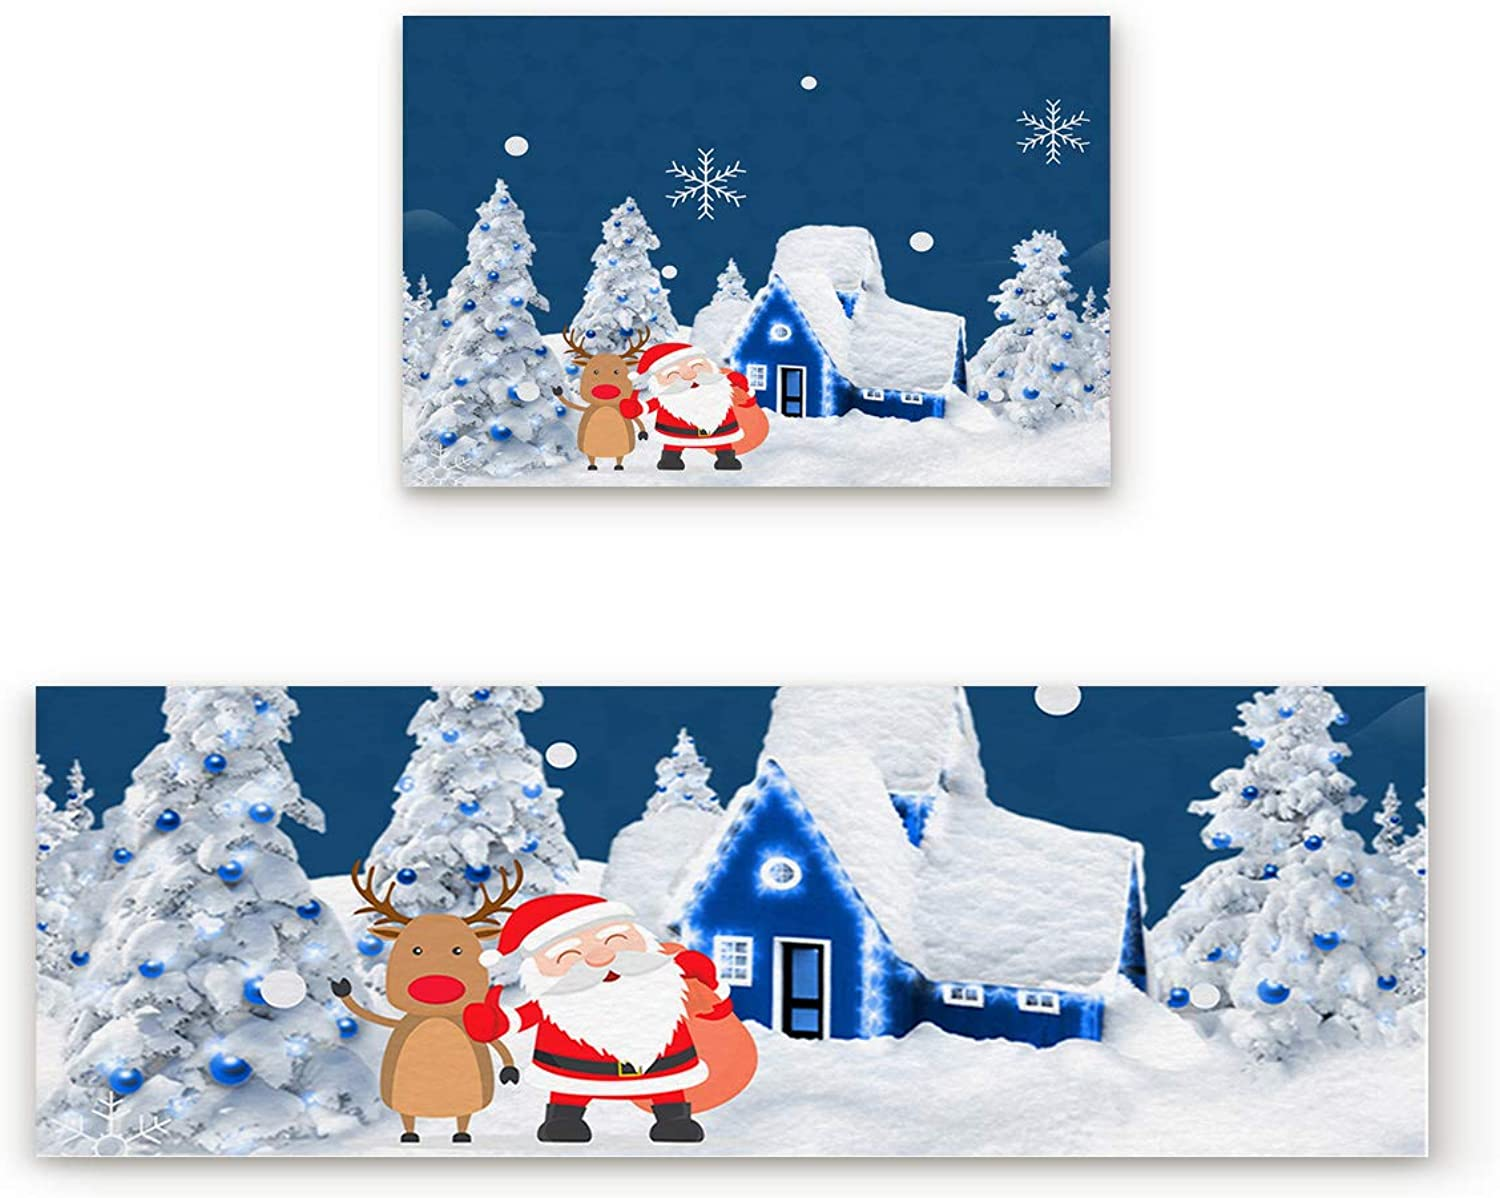 Aomike 2 Piece Non-Slip Kitchen Mat Rubber Backing Doormat Santa Claus Deer Outside The House Runner Rug Set, Hallway Living Room Balcony Bathroom Carpet Sets (19.7  x 31.5 +19.7  x 47.2 )